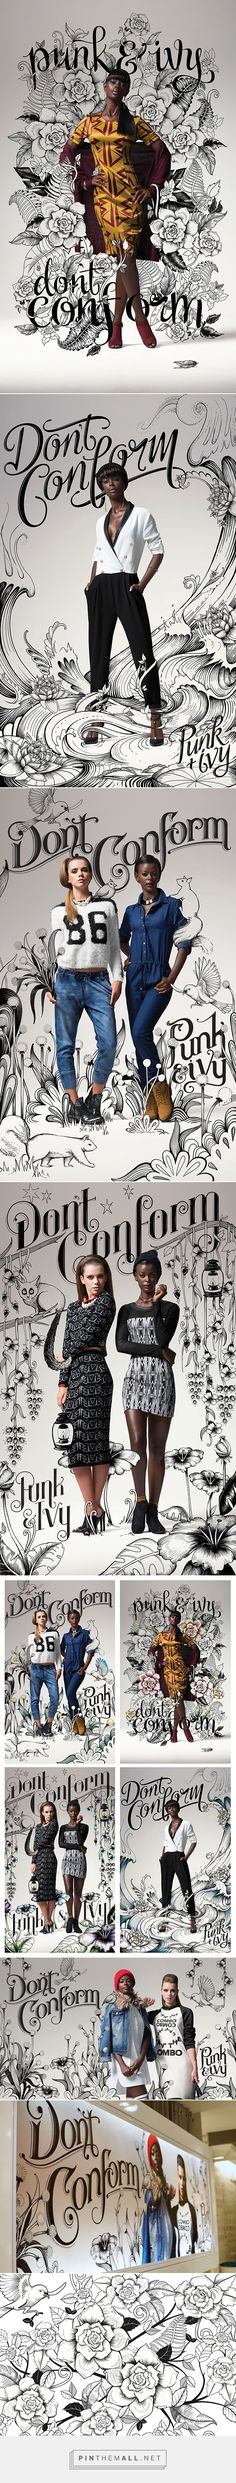 advertising set | LEGiT Don't Conform Campaign on SCAD Portfolios - Dani Loureiro